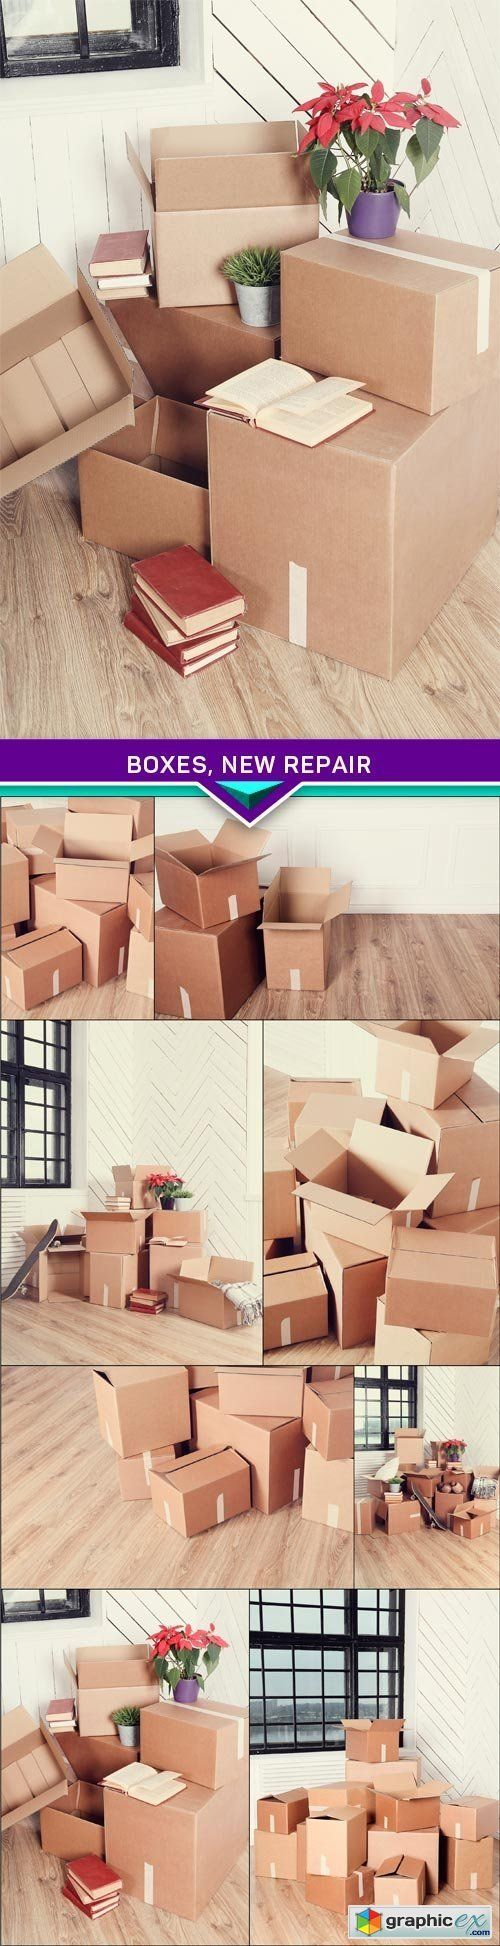 Boxes new repair 8 x JPEG  stock images